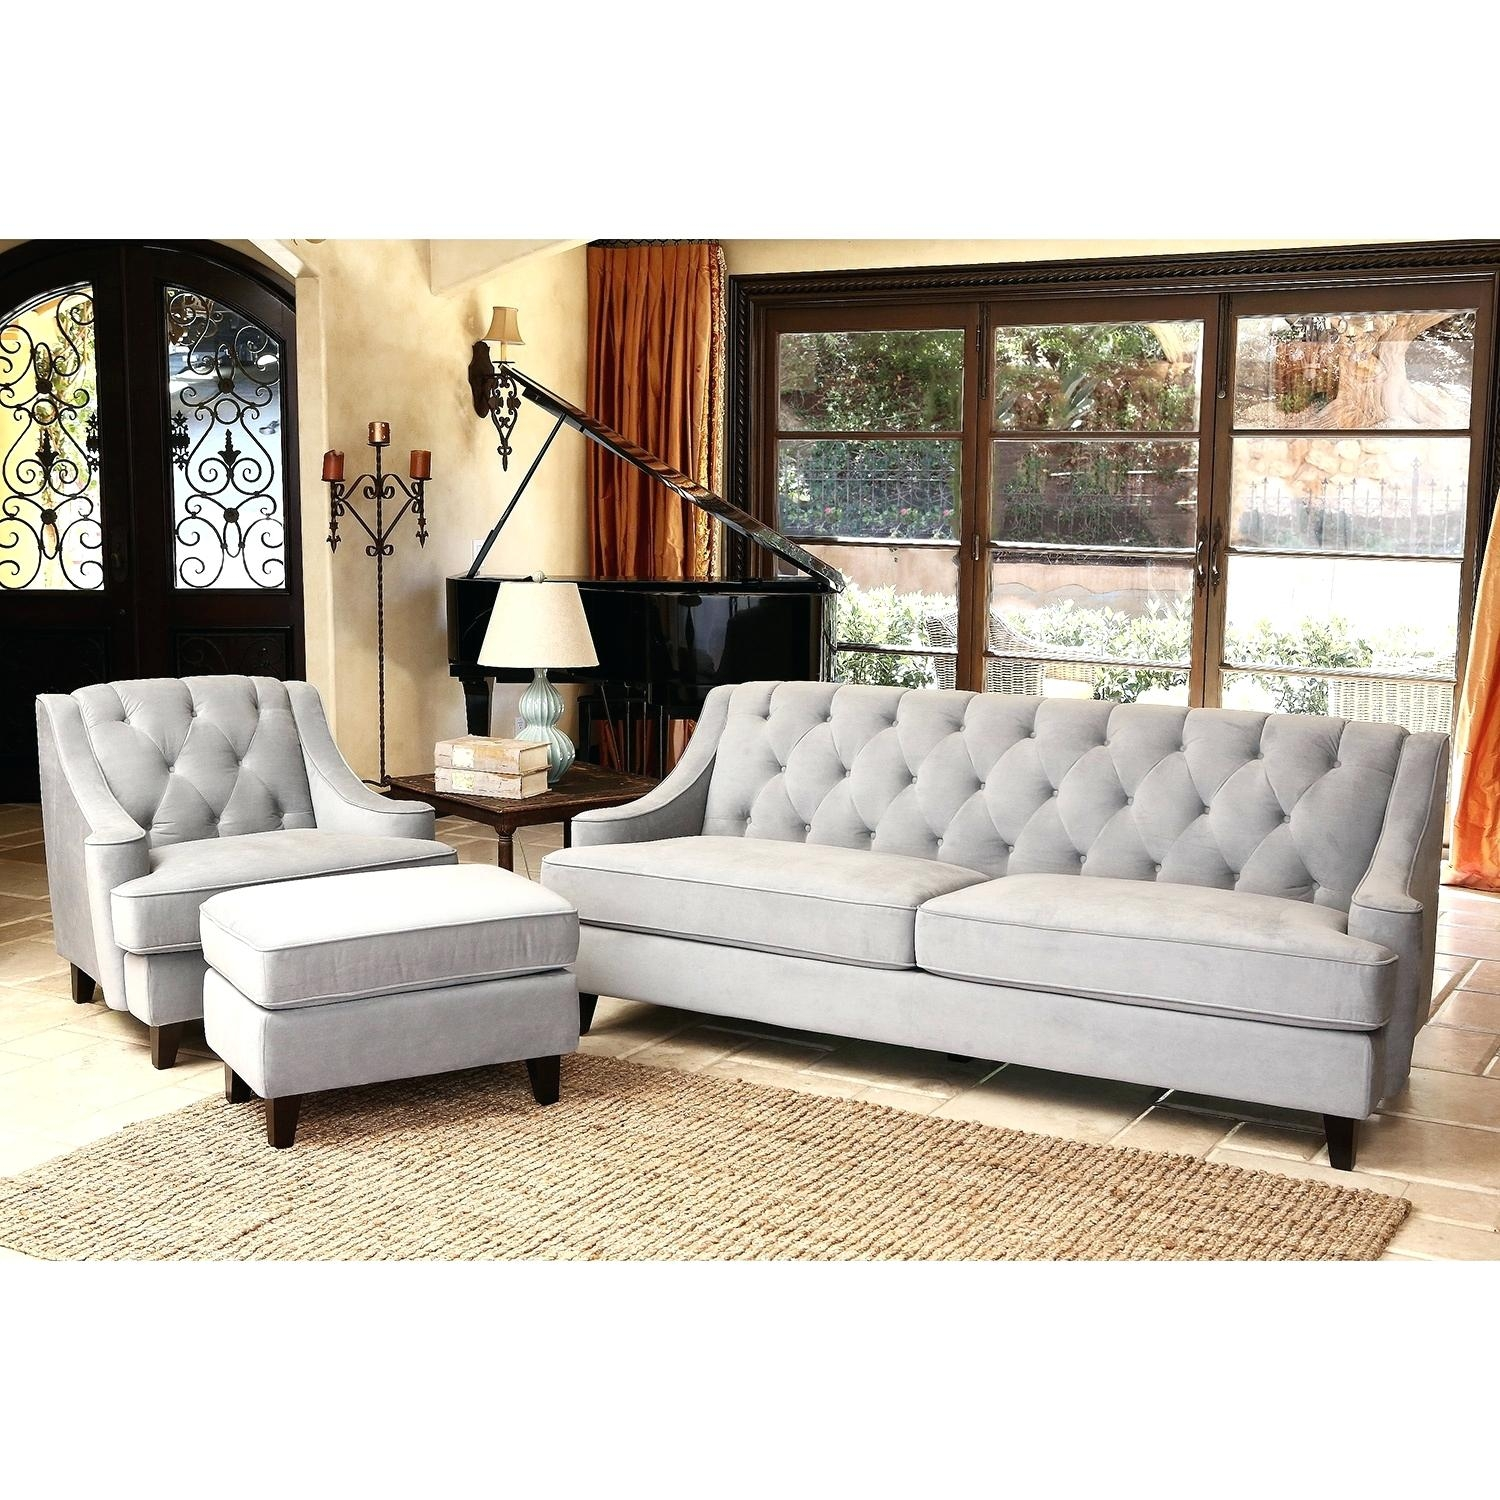 Dark Gray Ottoman Abson Living Ci D107 Crm Bailey Sectional Sofa With Regard To Abbyson Living Charlotte Dark Brown Sectional Sofa And Ottoman (Image 11 of 15)